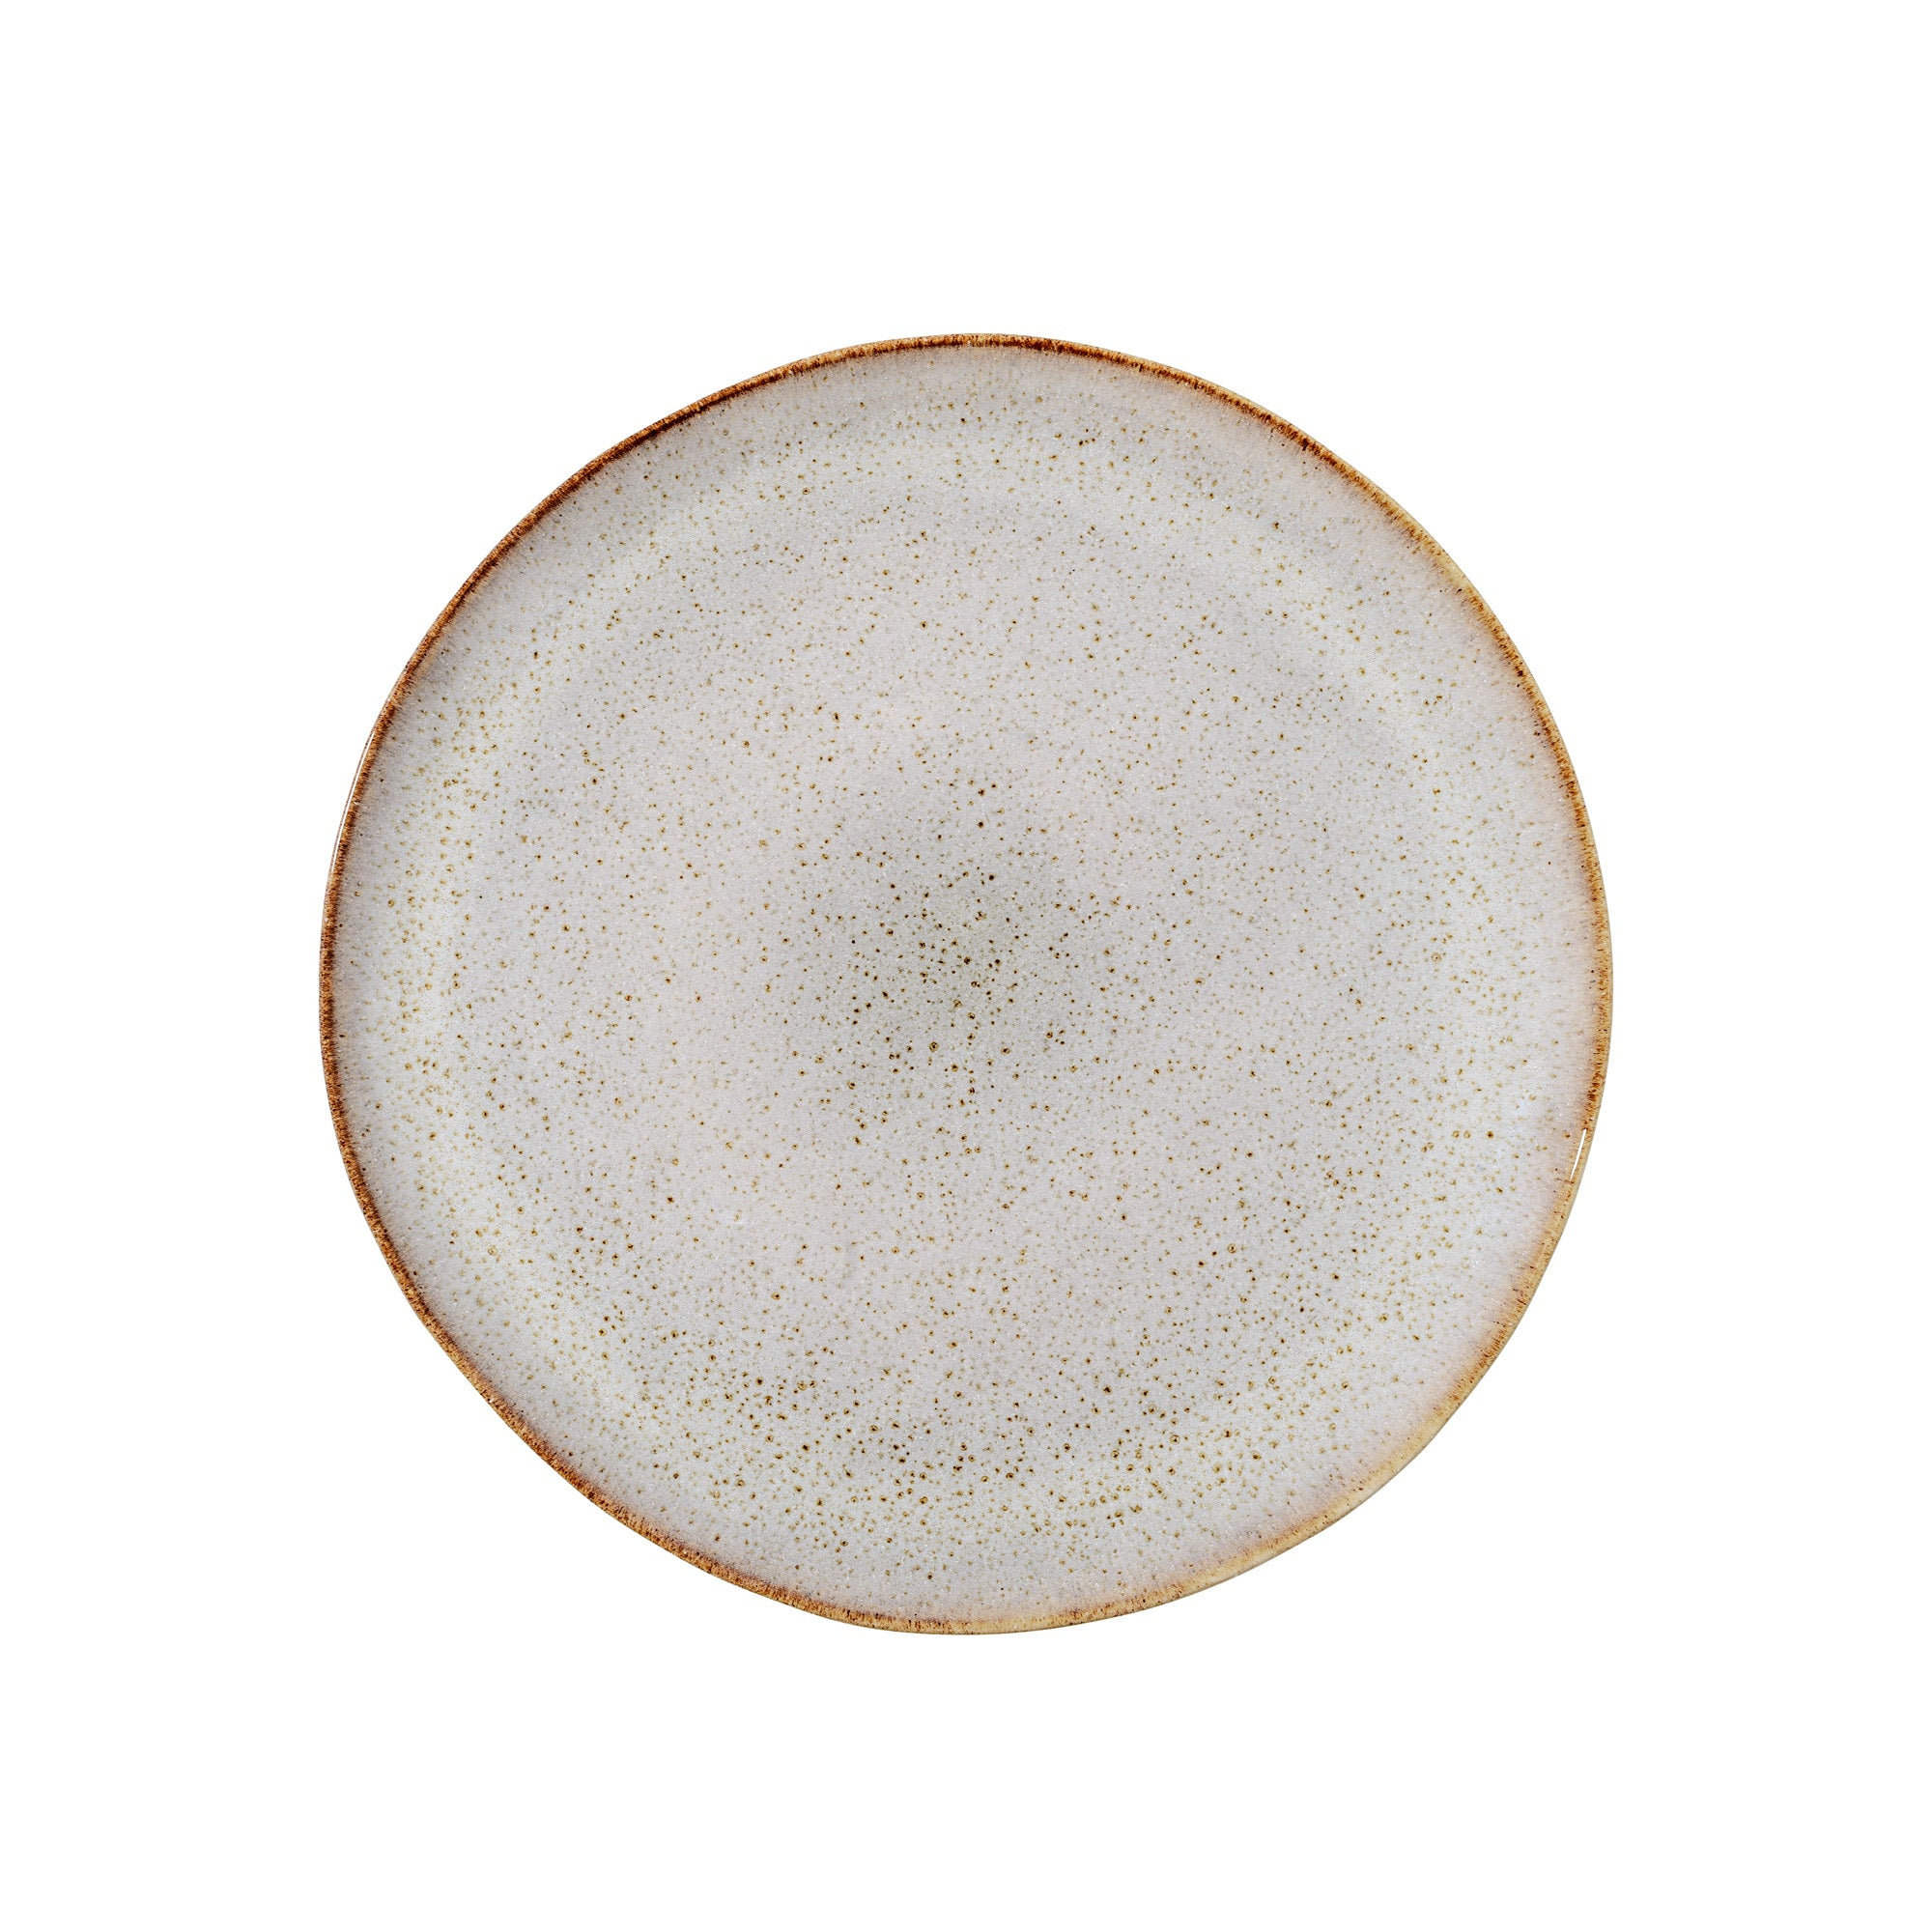 Handcrafted Stoneware Plate